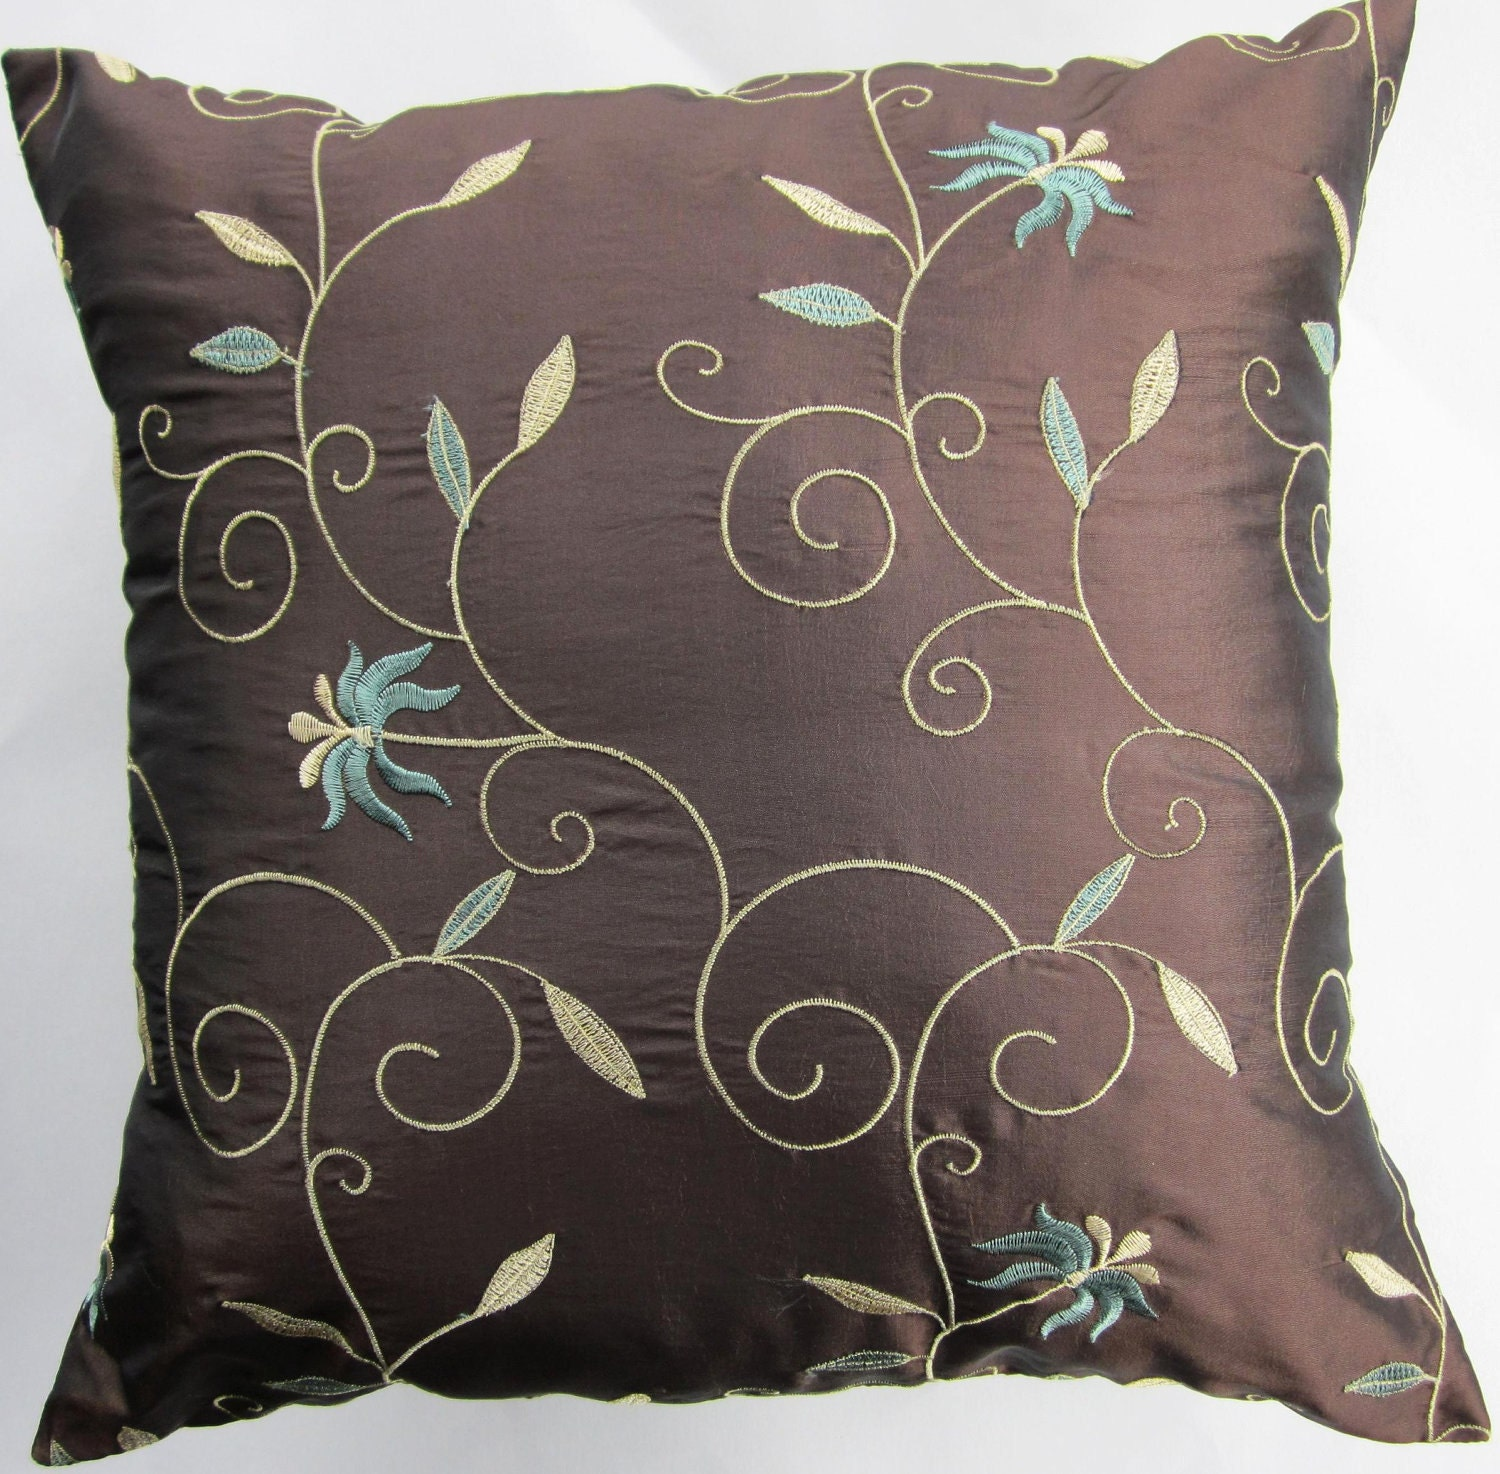 Throw Pillow Covers Brown : Brown Pillow Cover Teal on Chocolate Brown Throw Pillow